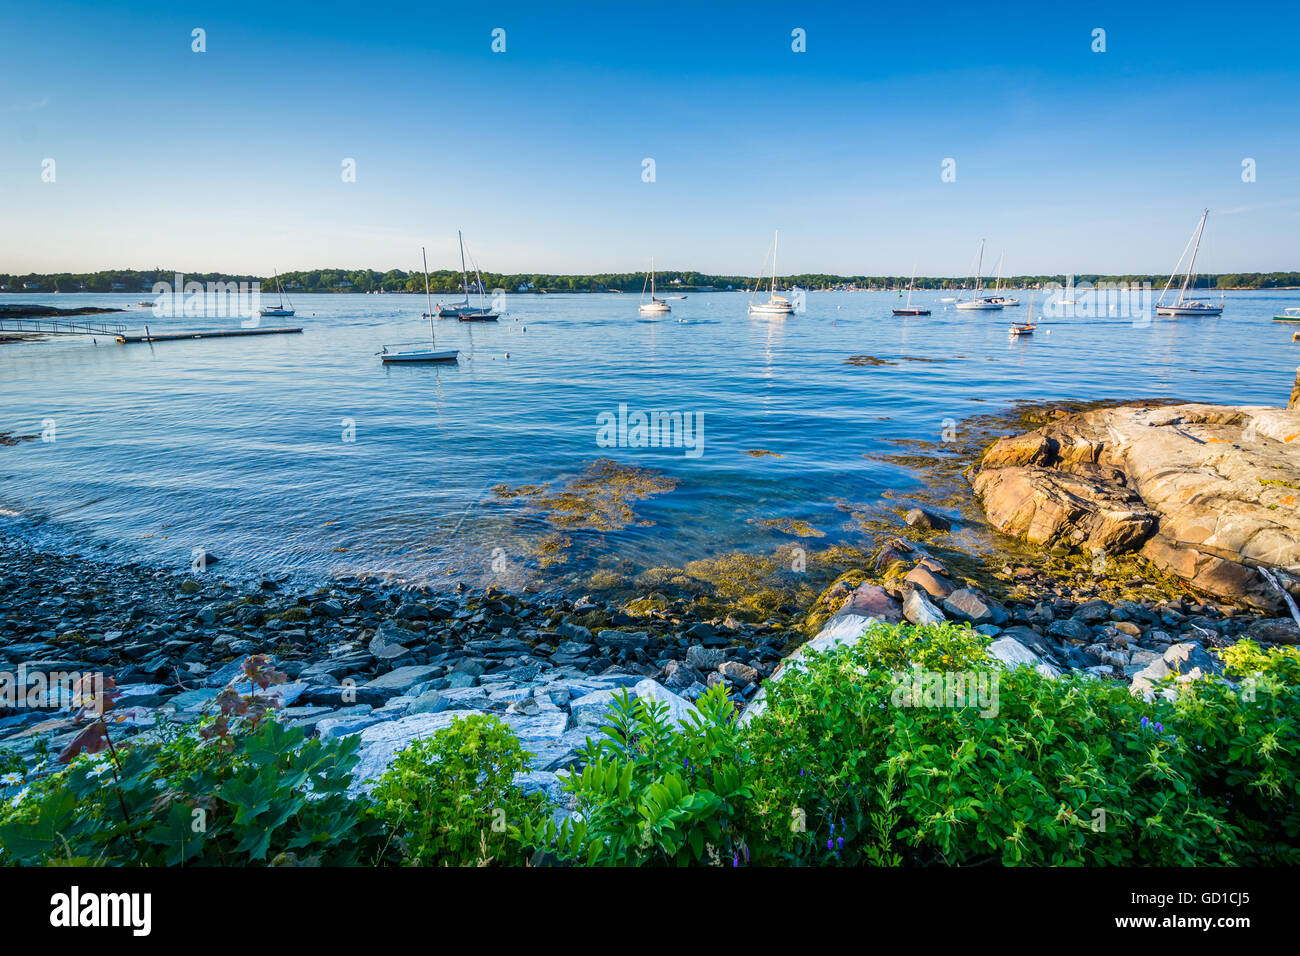 View of the Piscataqua River, in New Castle, Portsmouth, New Hampshire. - Stock Image